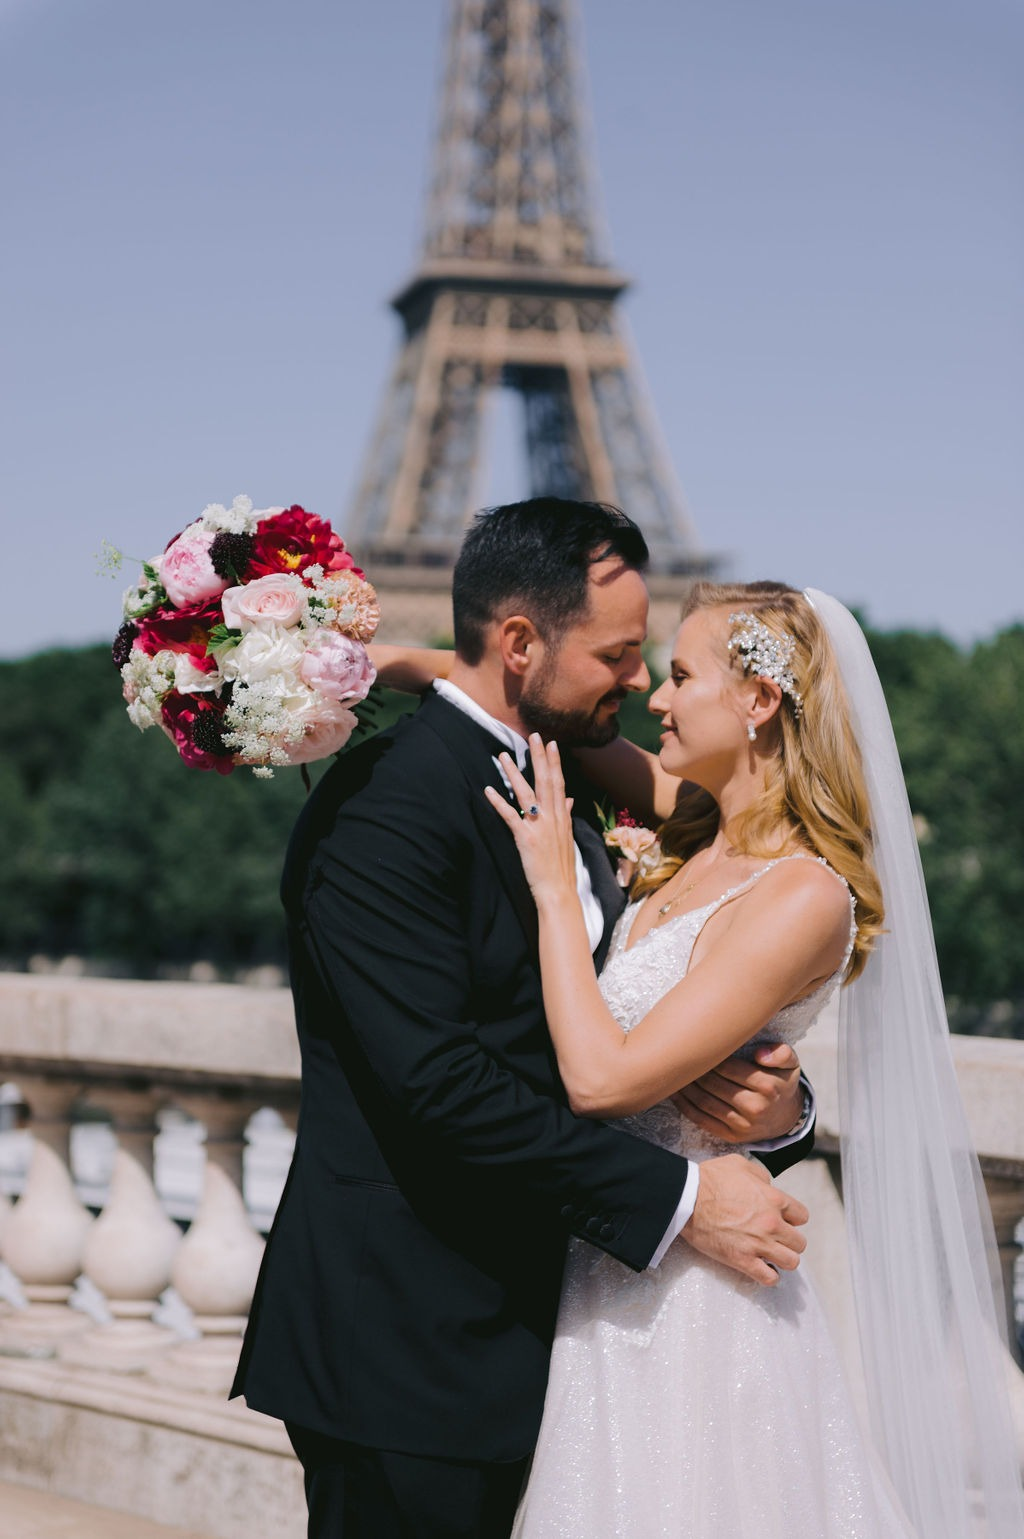 Intimate celebrations in Paris